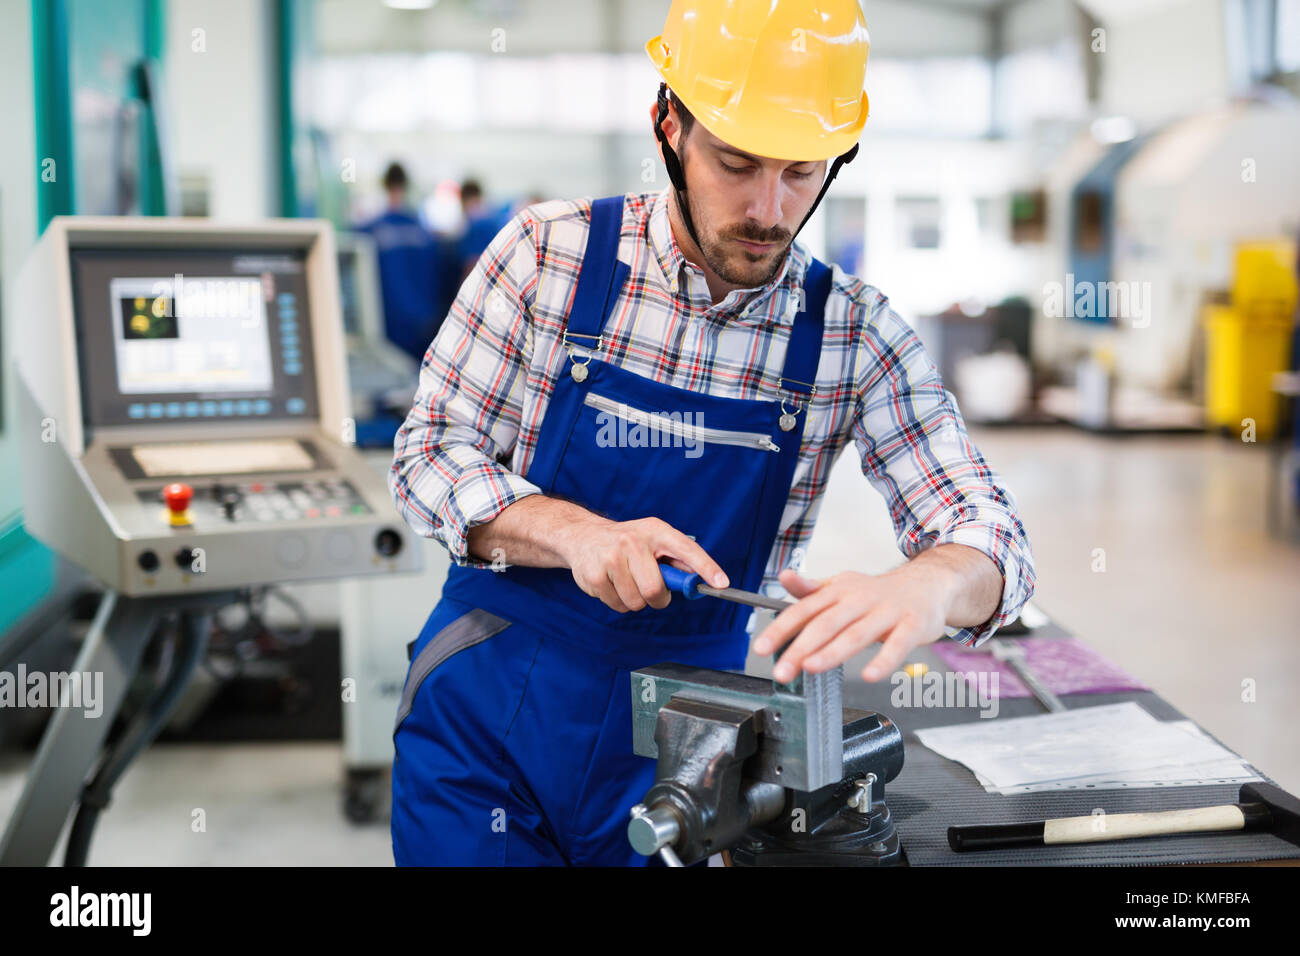 industrial factory employee working in metal manufacturing industry - Stock Image